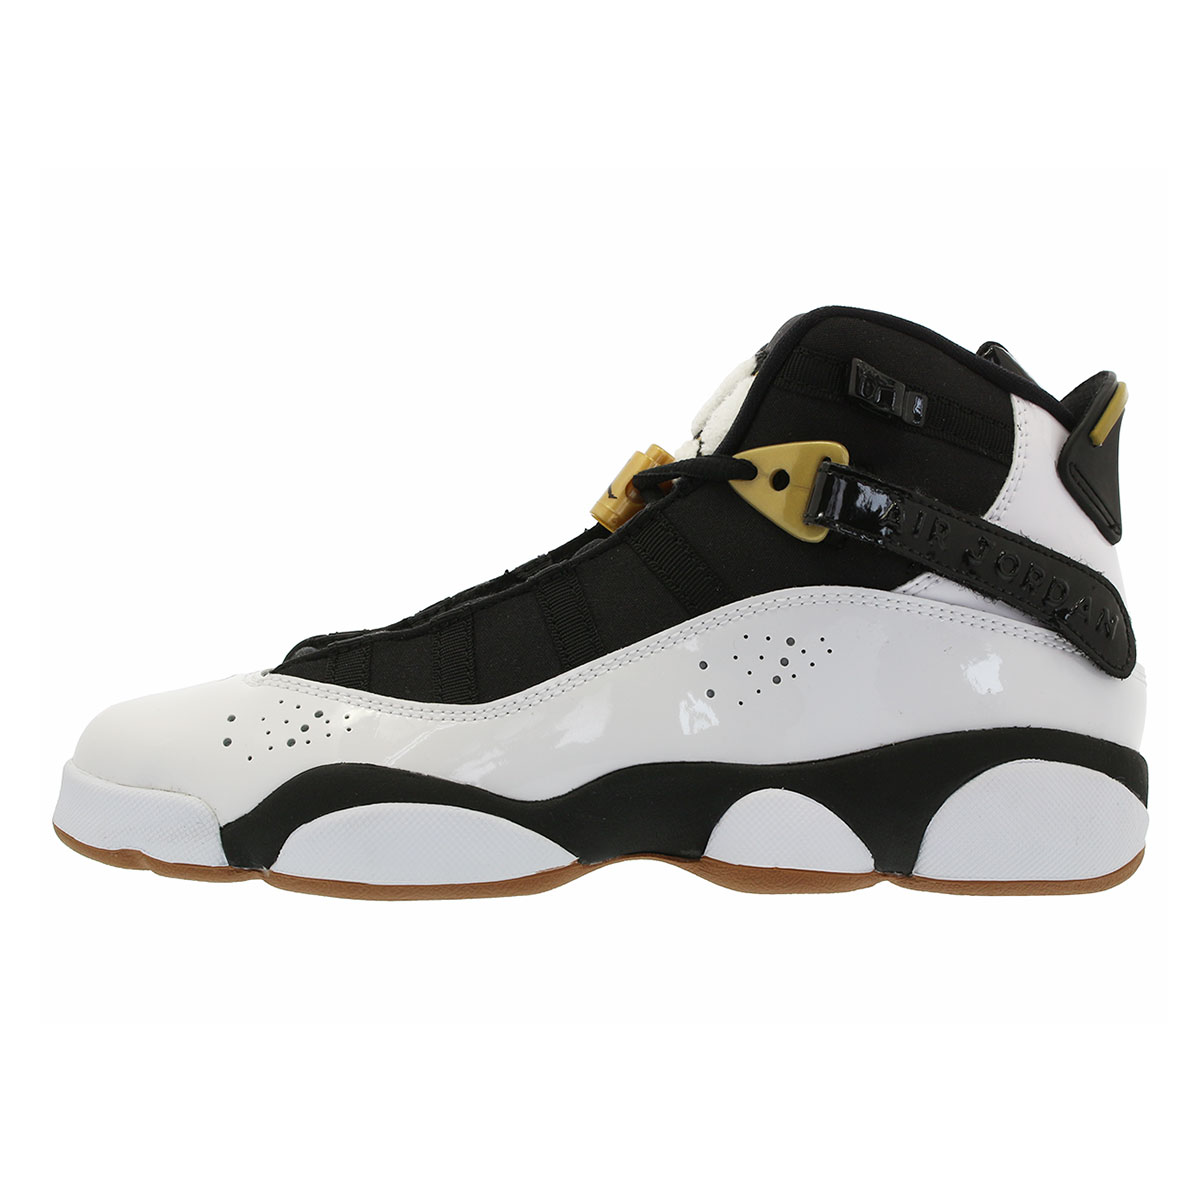 NIKE AIR JORDAN 6 RINGS GG Nike Air Jordan 6 RINGS Co.,Ltd. GG WHITE/BLACK/GOLD/BROWN